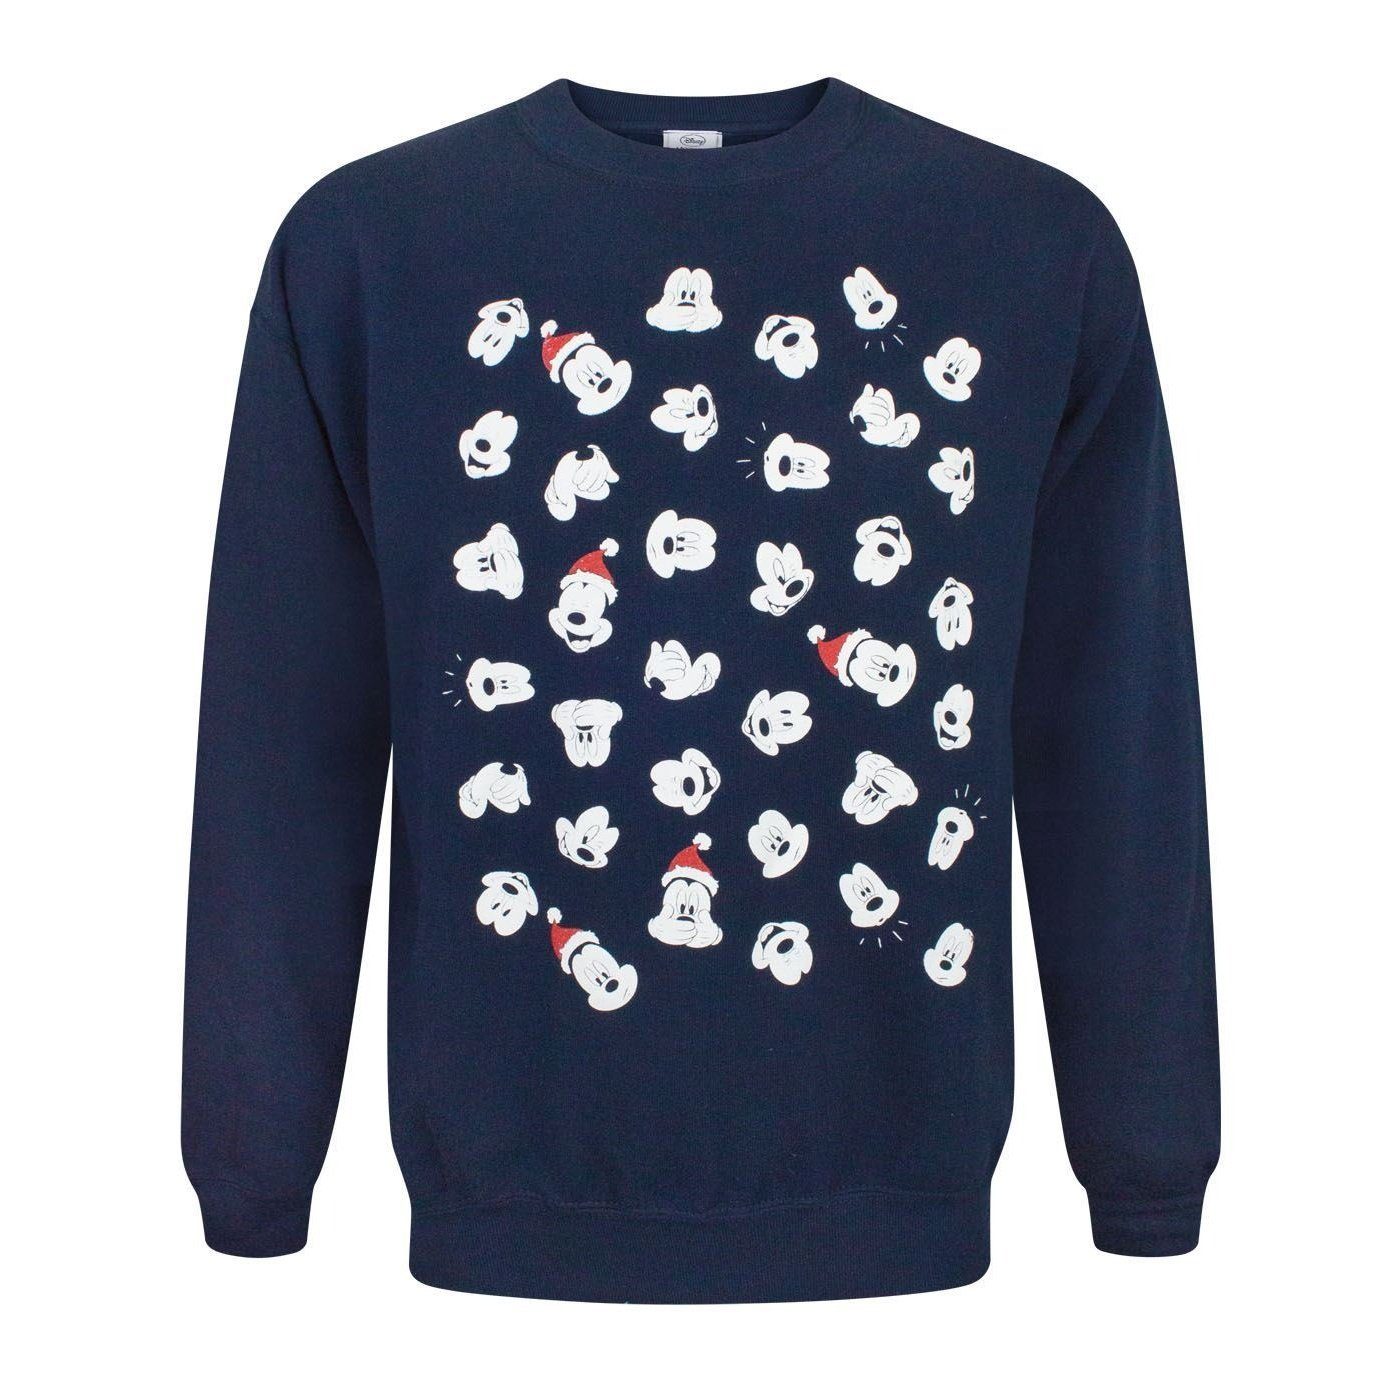 Disney Mickey Mouse Faces Christmas Sweatshirt Fashion UK